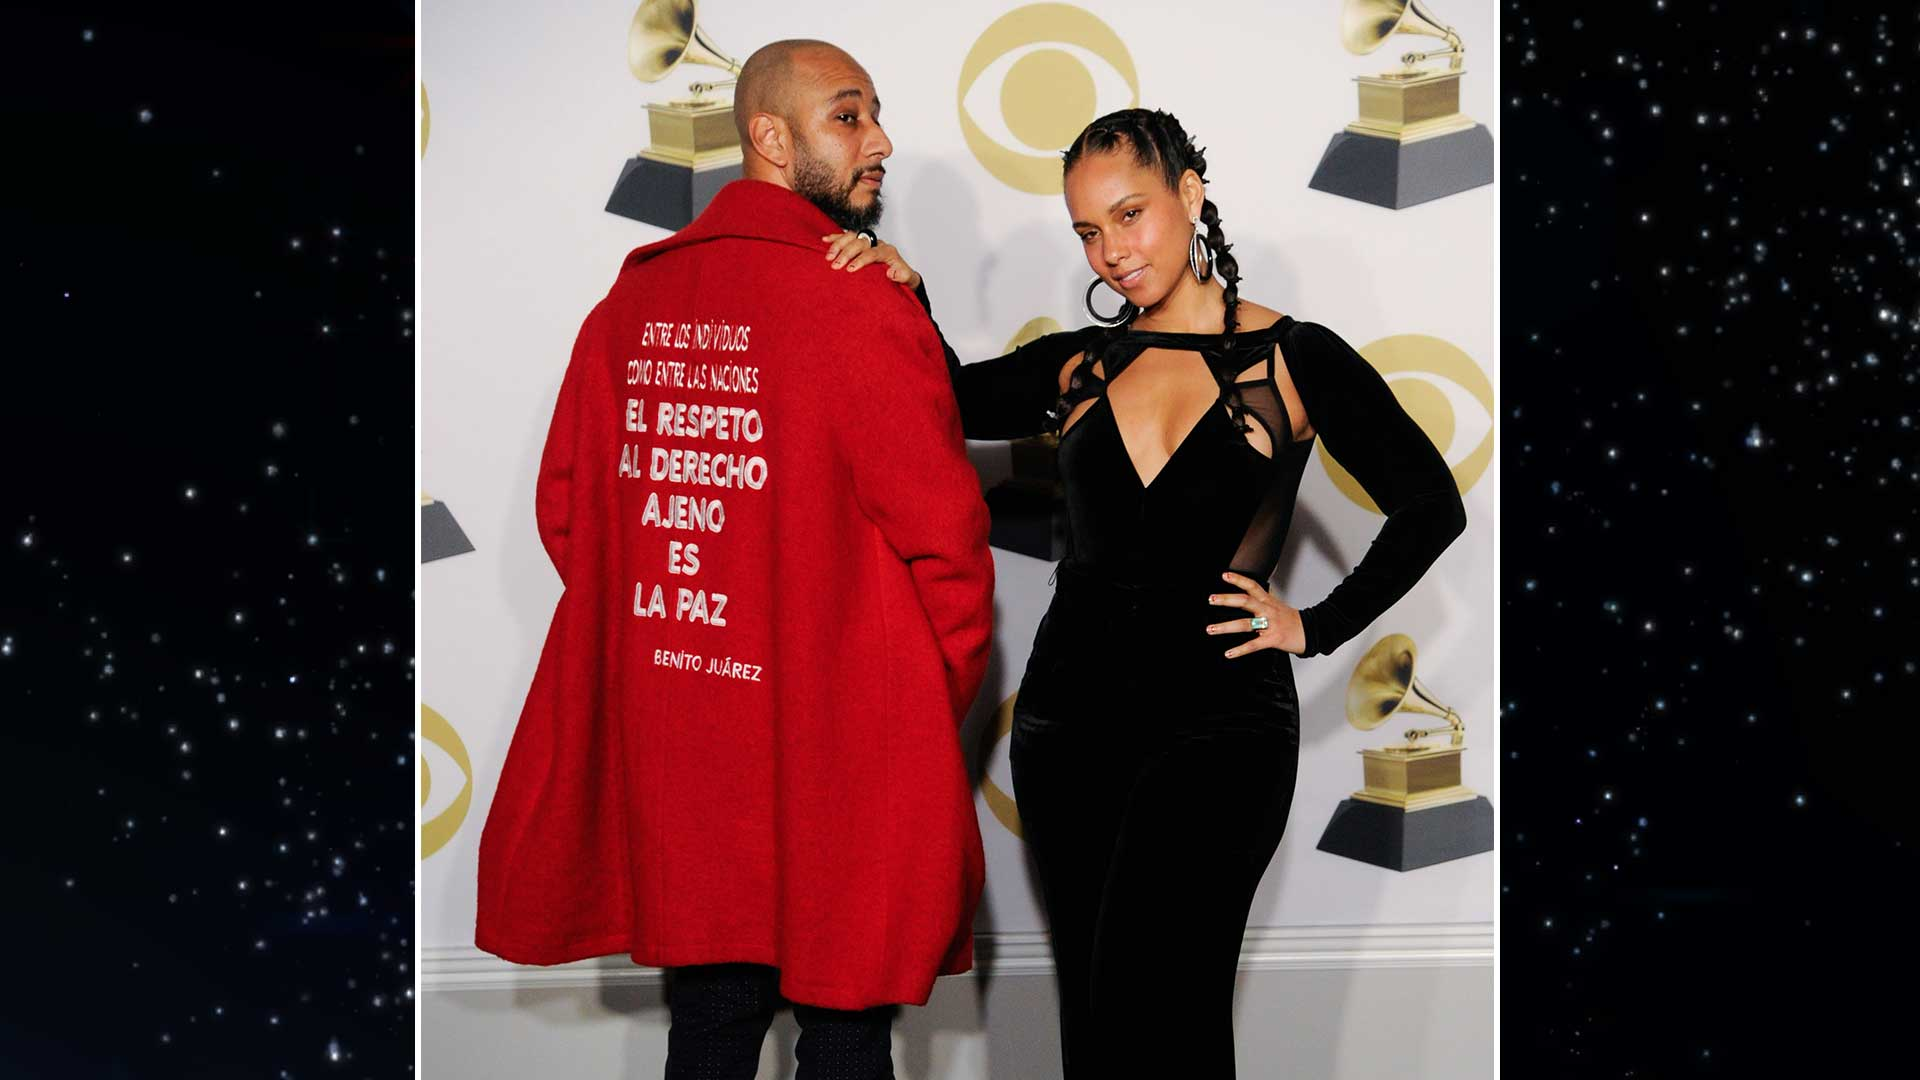 Alicia Keys puts her hand on her husband Swizz Beatz's shoulder as they pose in the GRAMMY press room.